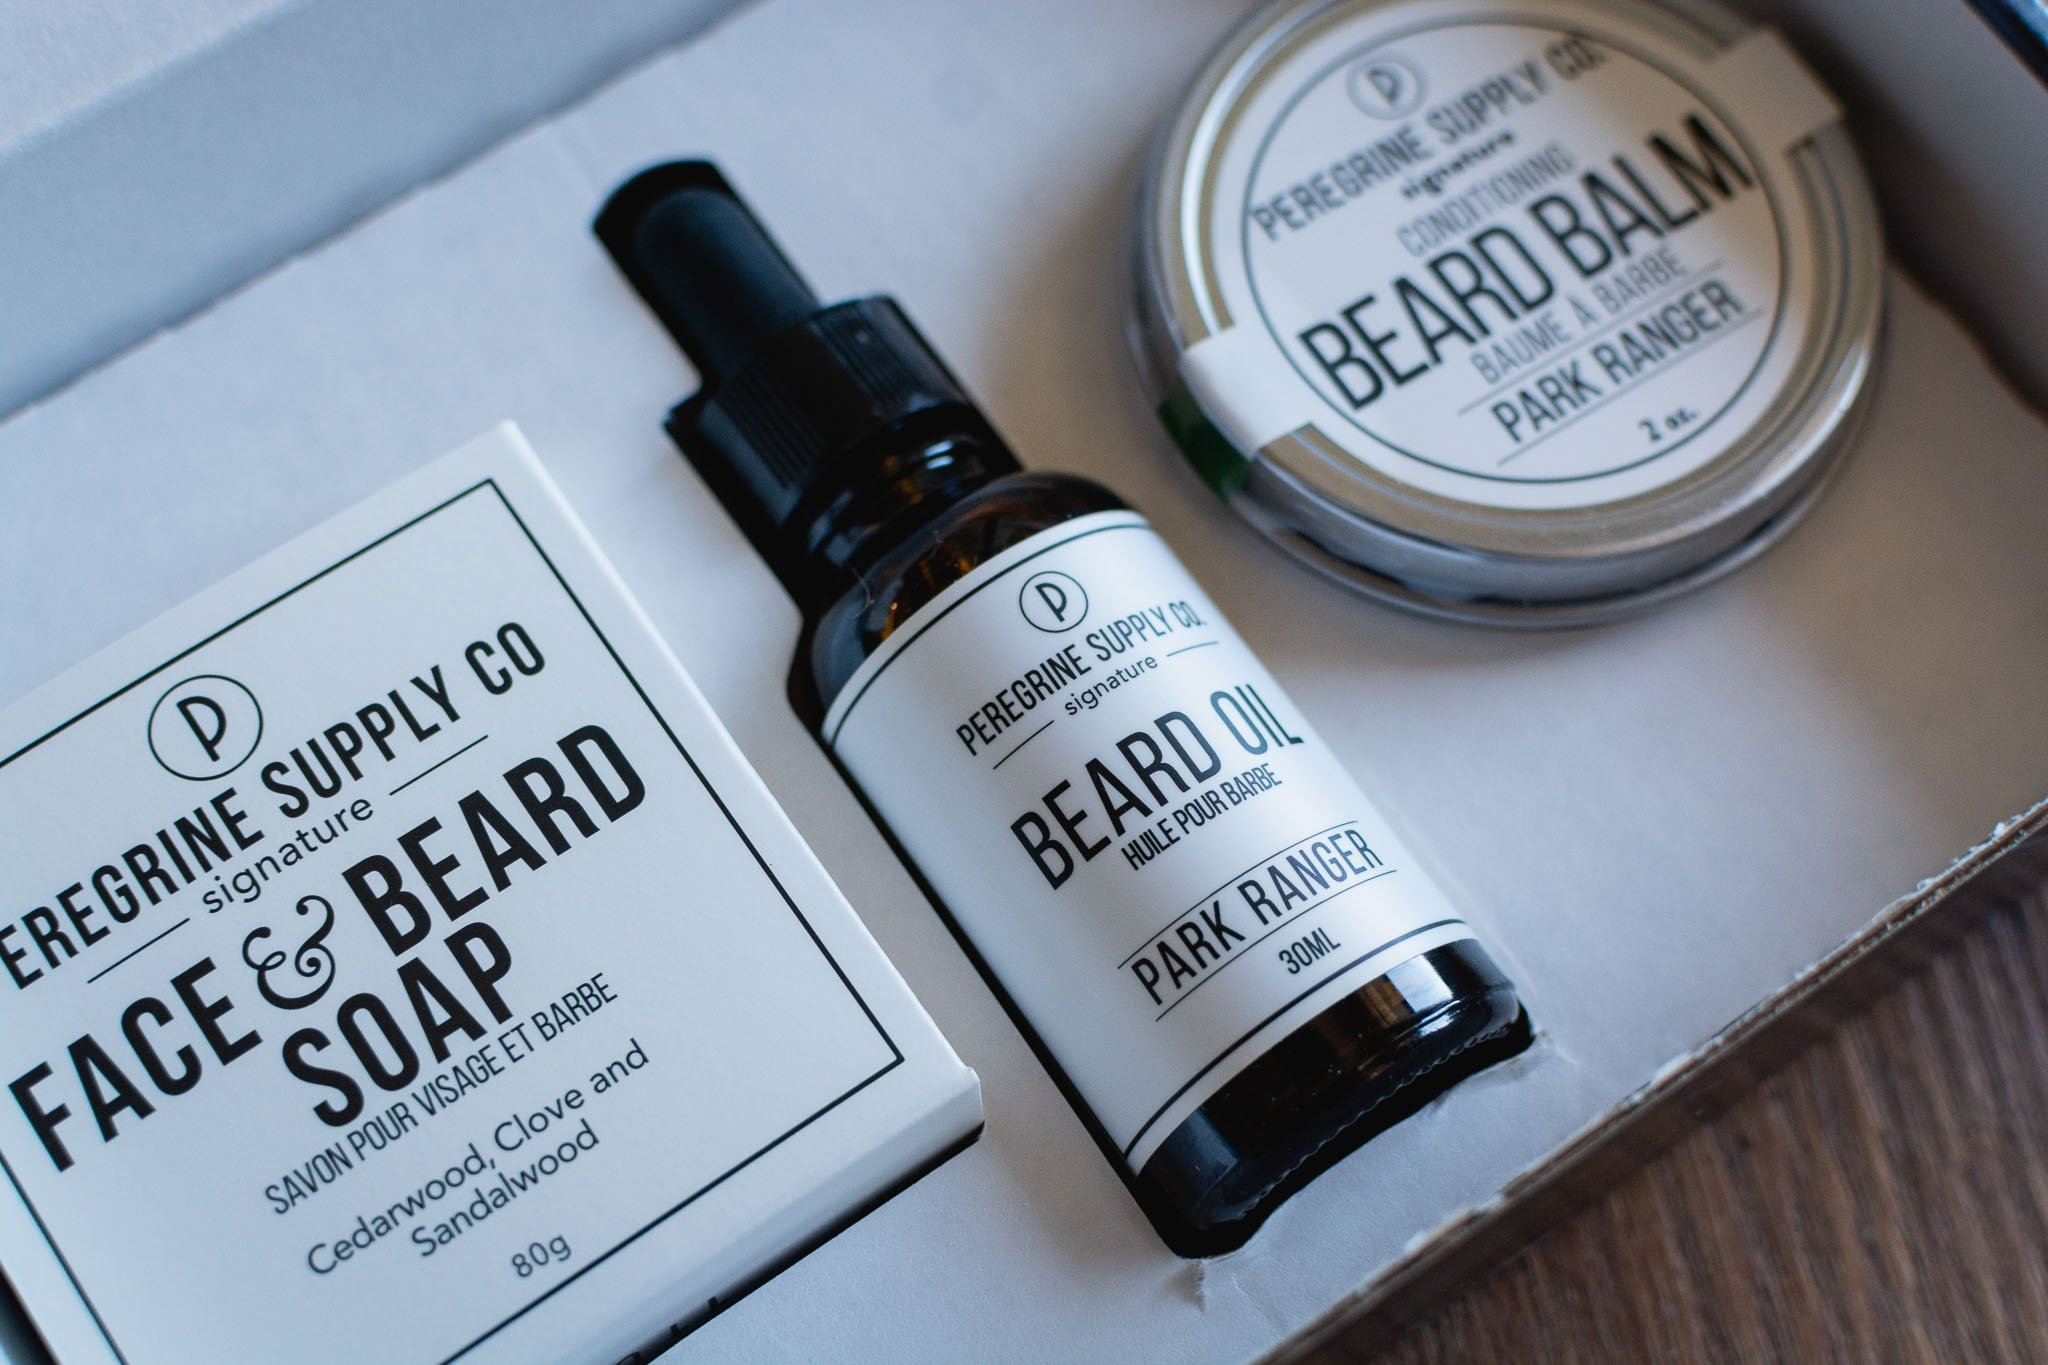 Beard Box Care Package by Peregrine Supply Co